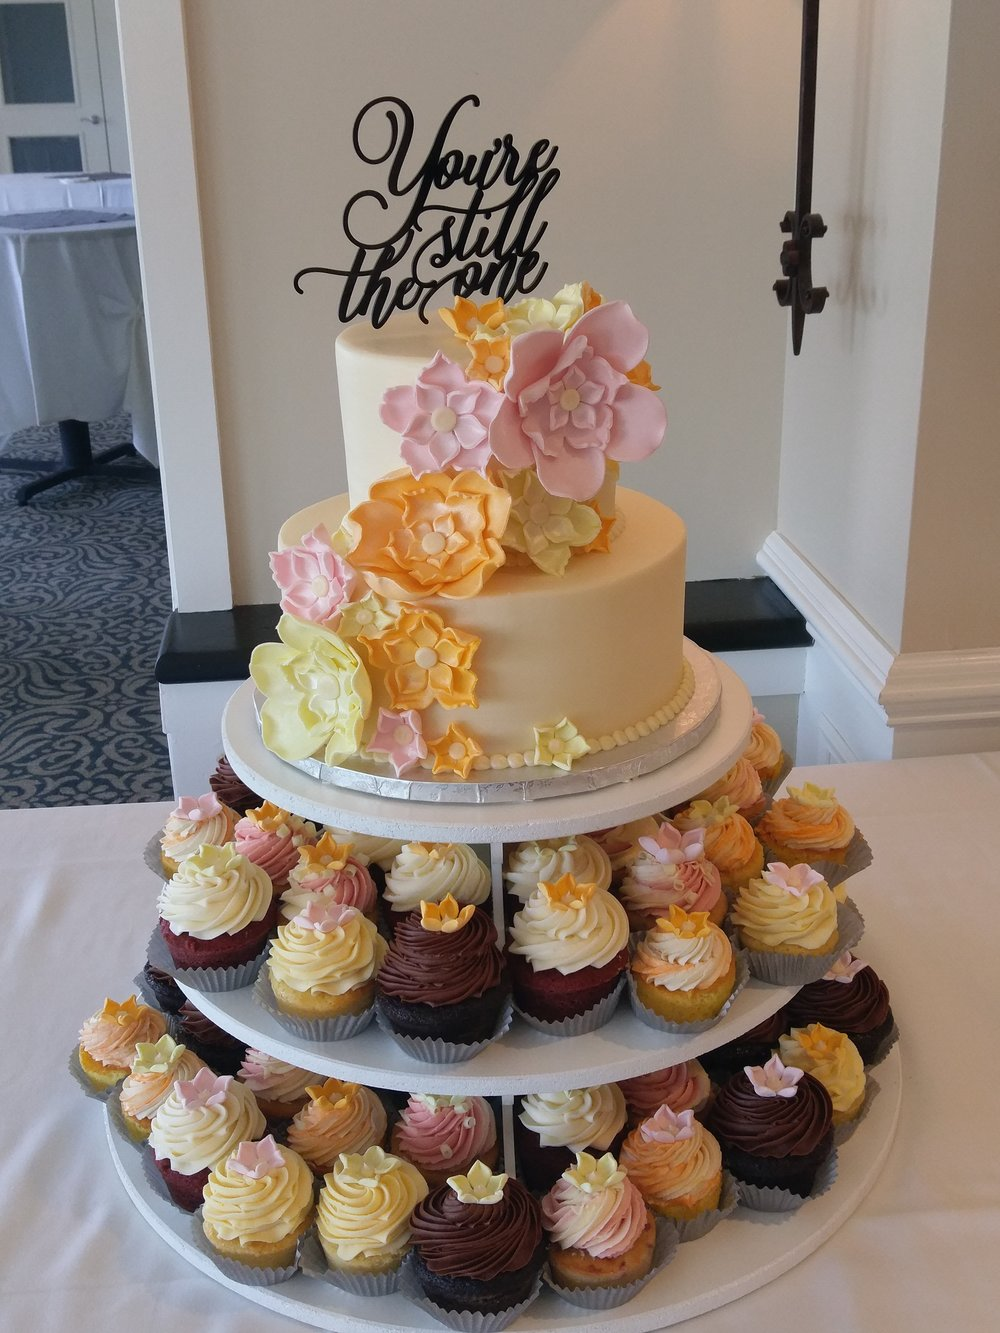 Your Still the One Wedding Cake and Cupcakes